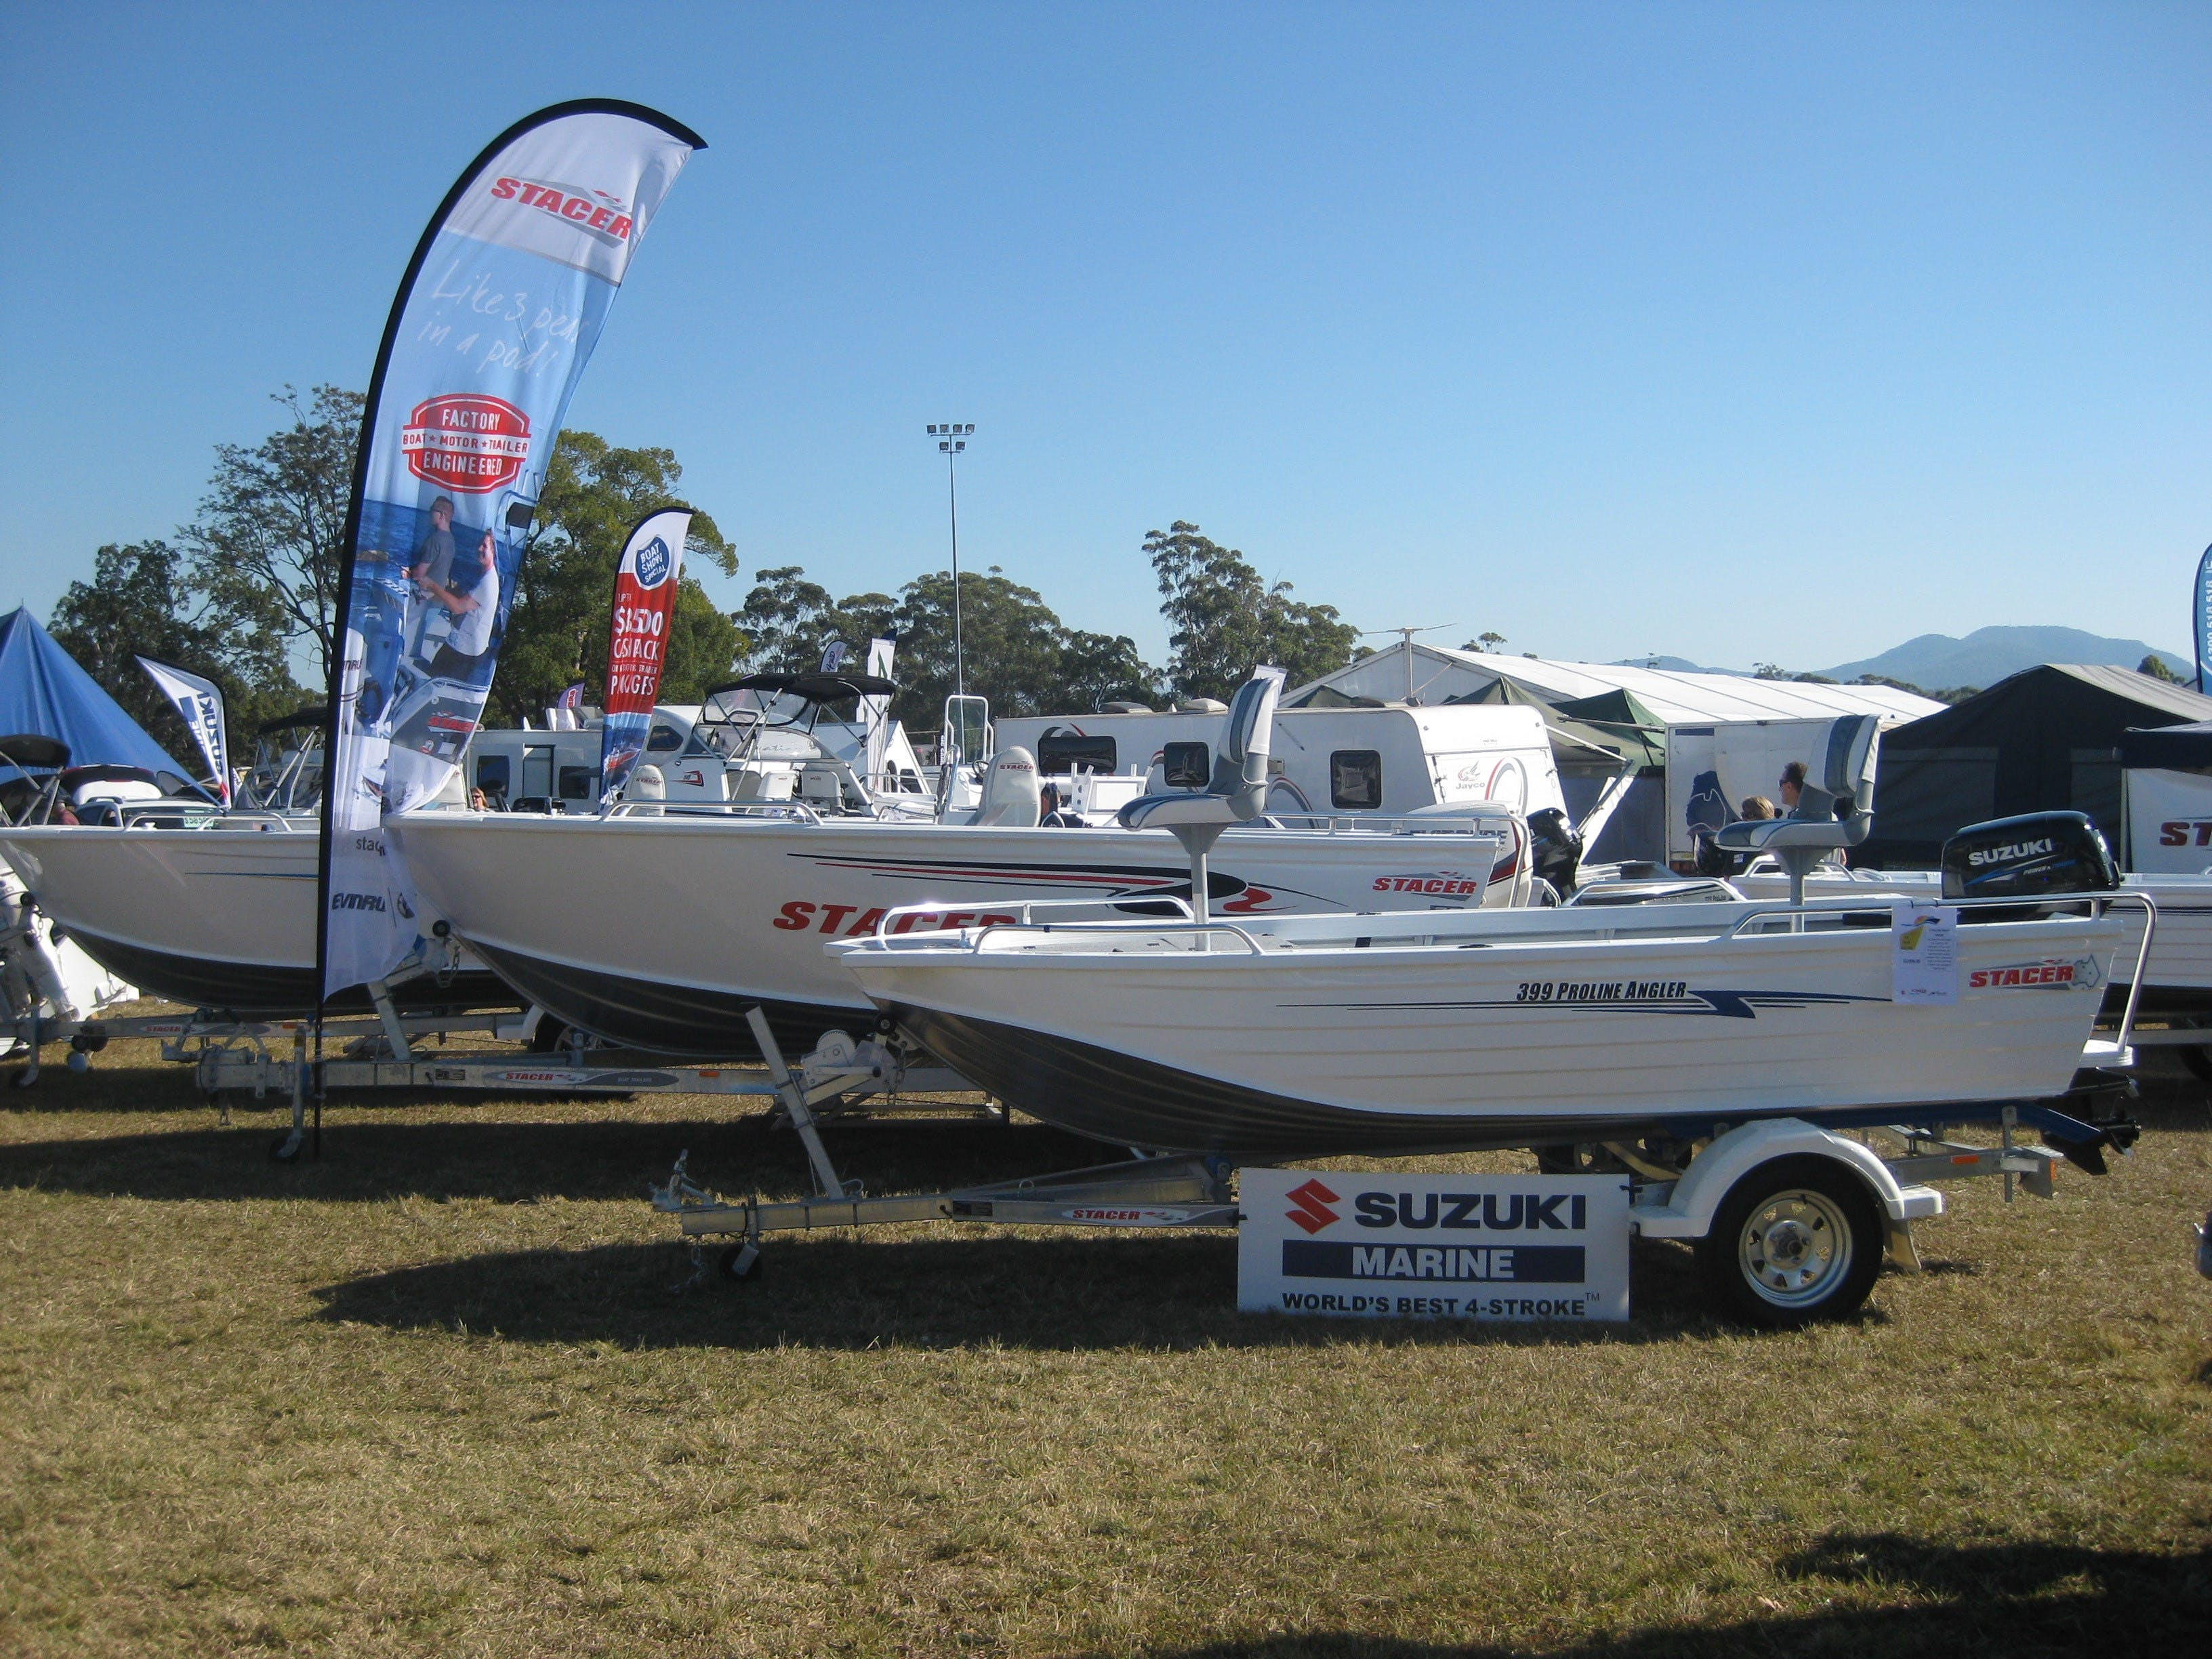 Mid North Coast Caravan Camping 4WD Fish and Boat Show - Sunshine Coast Tourism